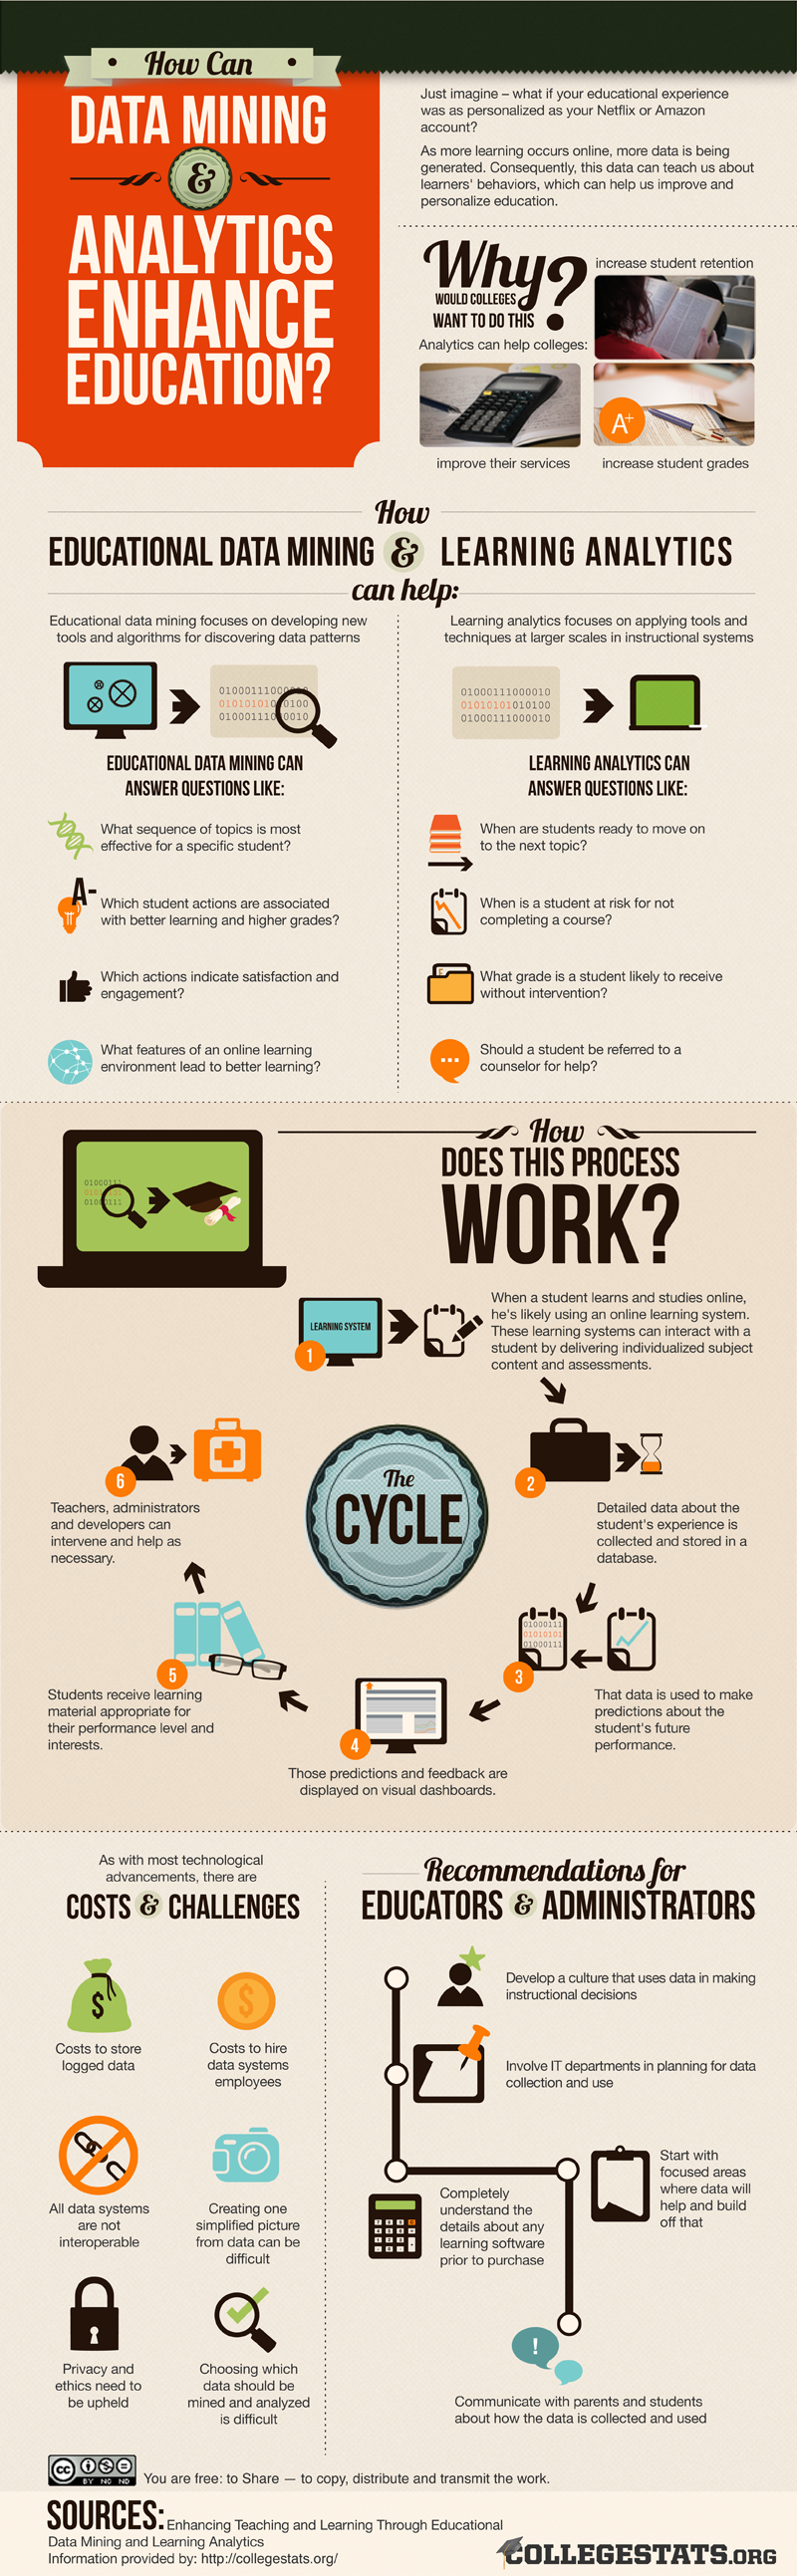 How Can Data Mining & Analytics Enhance Education? (Infographic); Source: CollegeStats.org